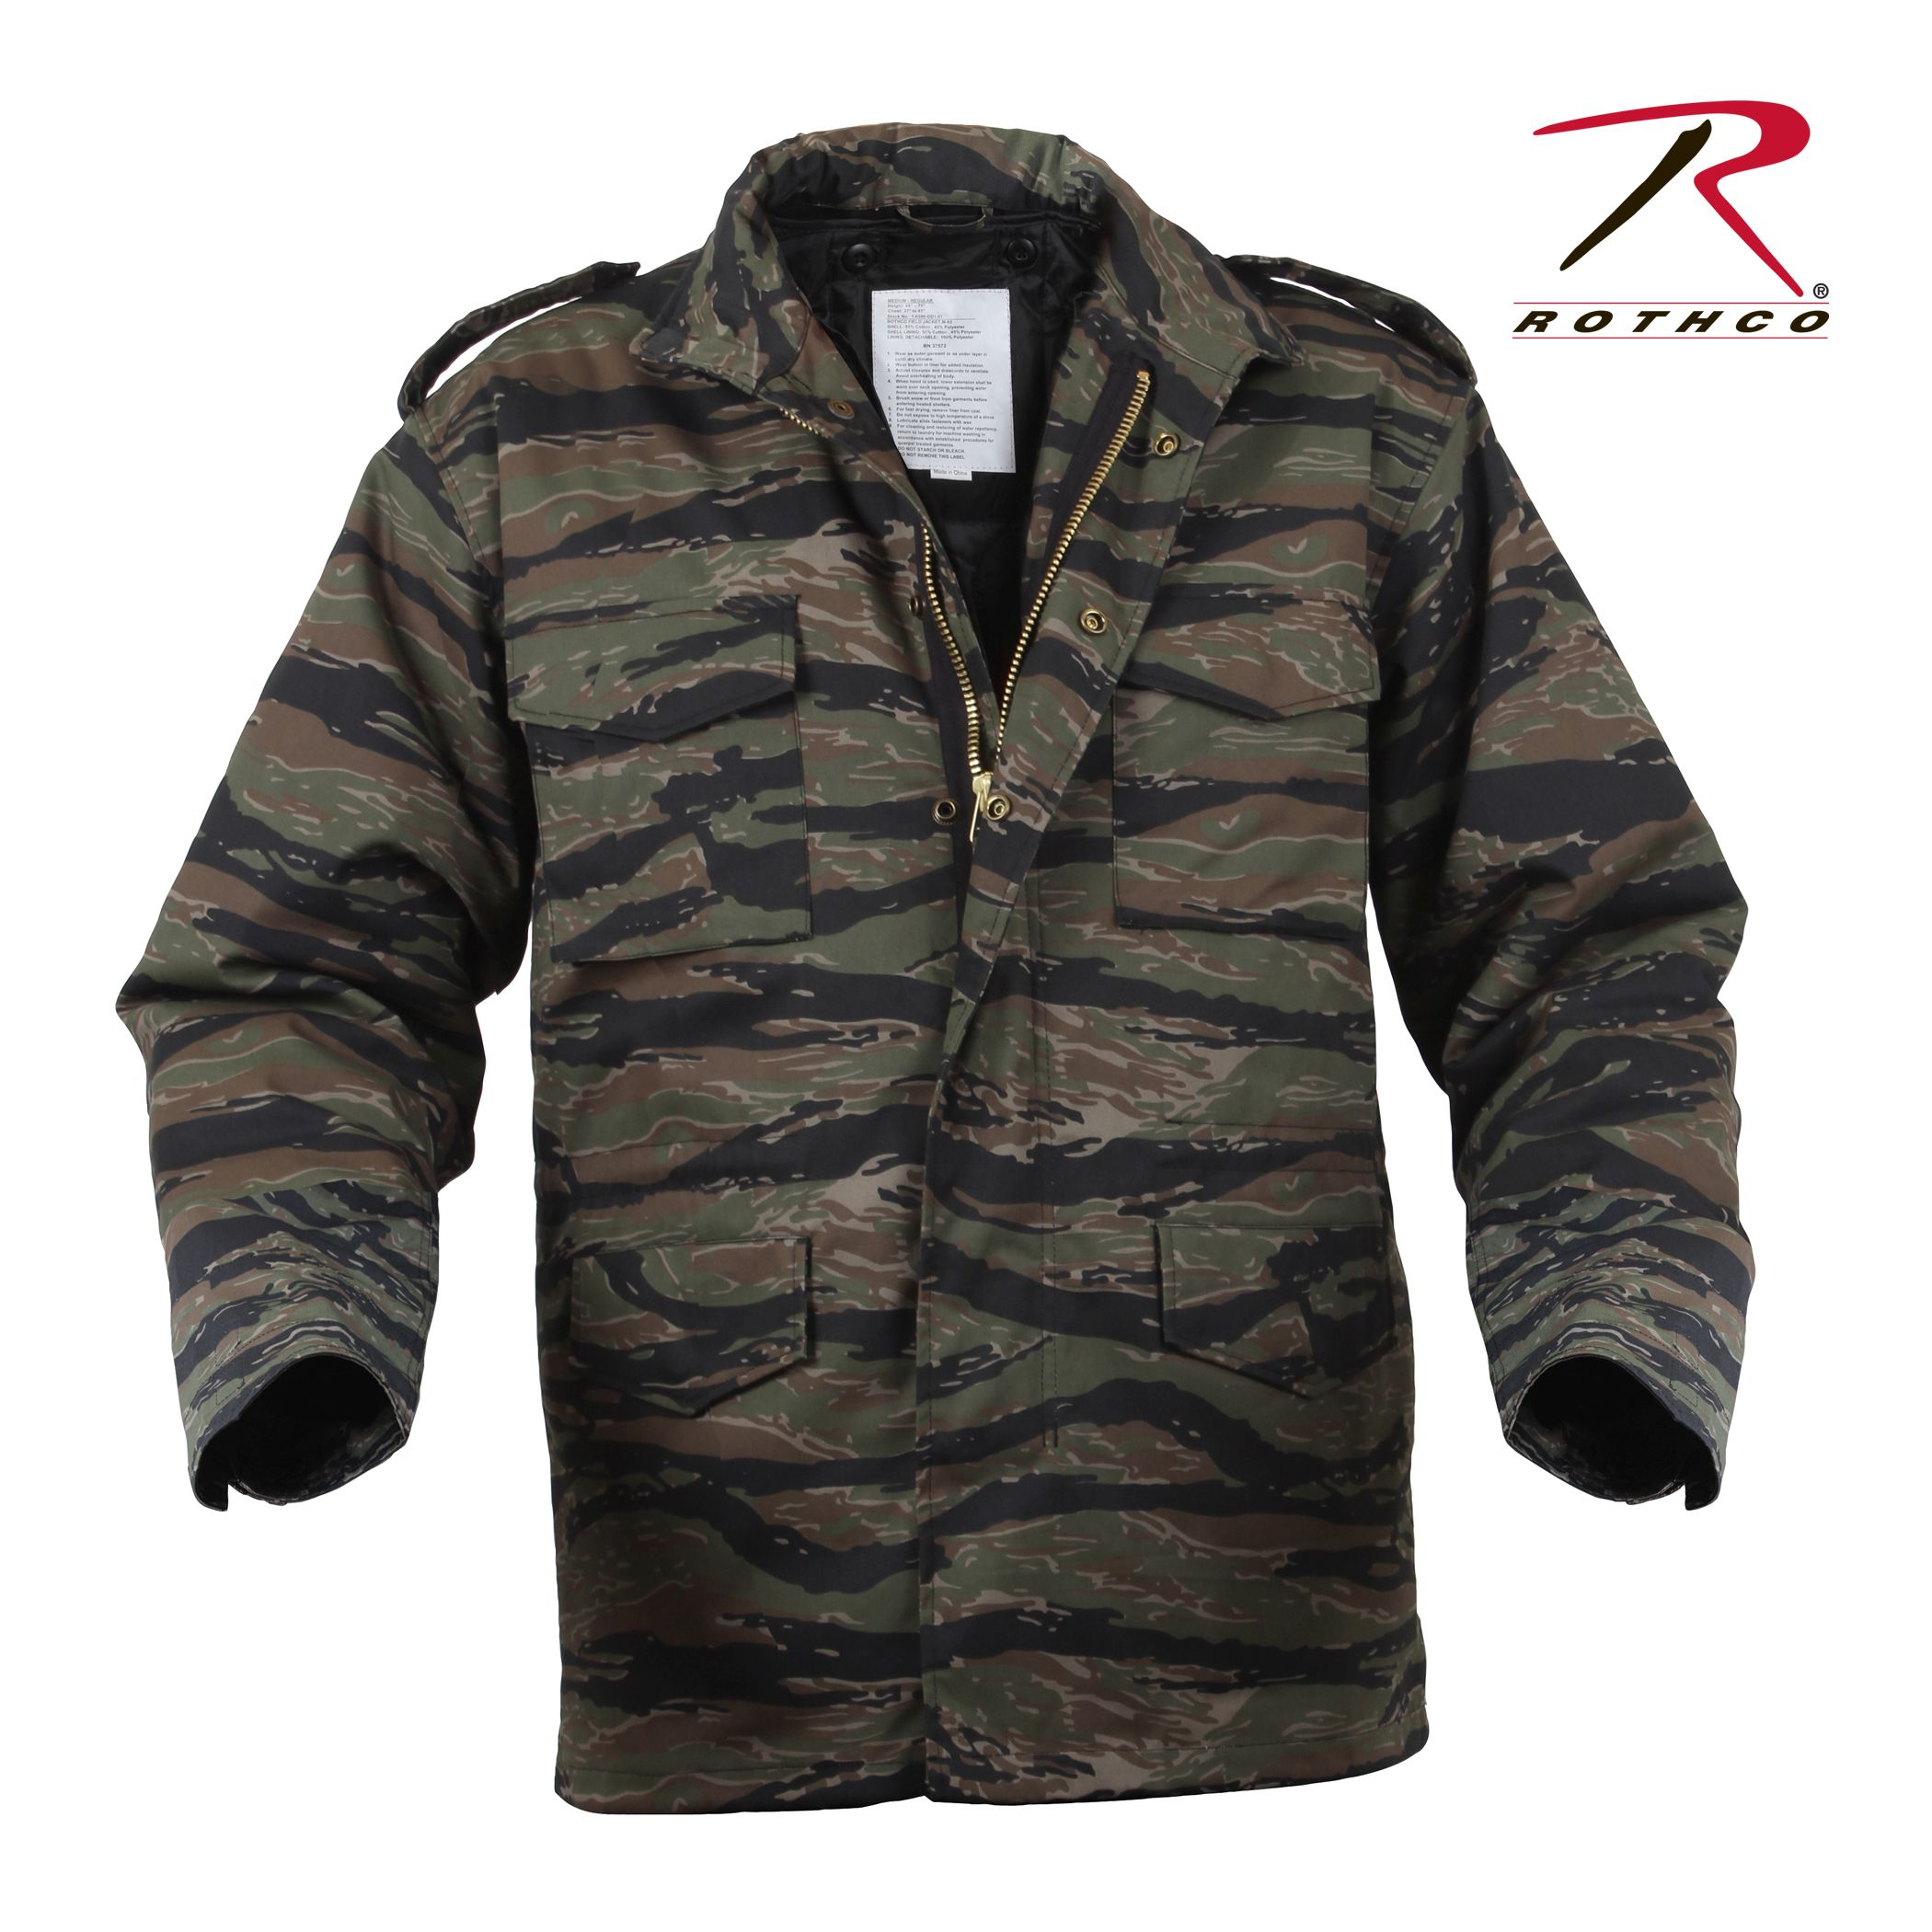 f75c90e73472d Buy Rothco Camo M-65 Field Jacket - Rothco Online at Best price - NJ